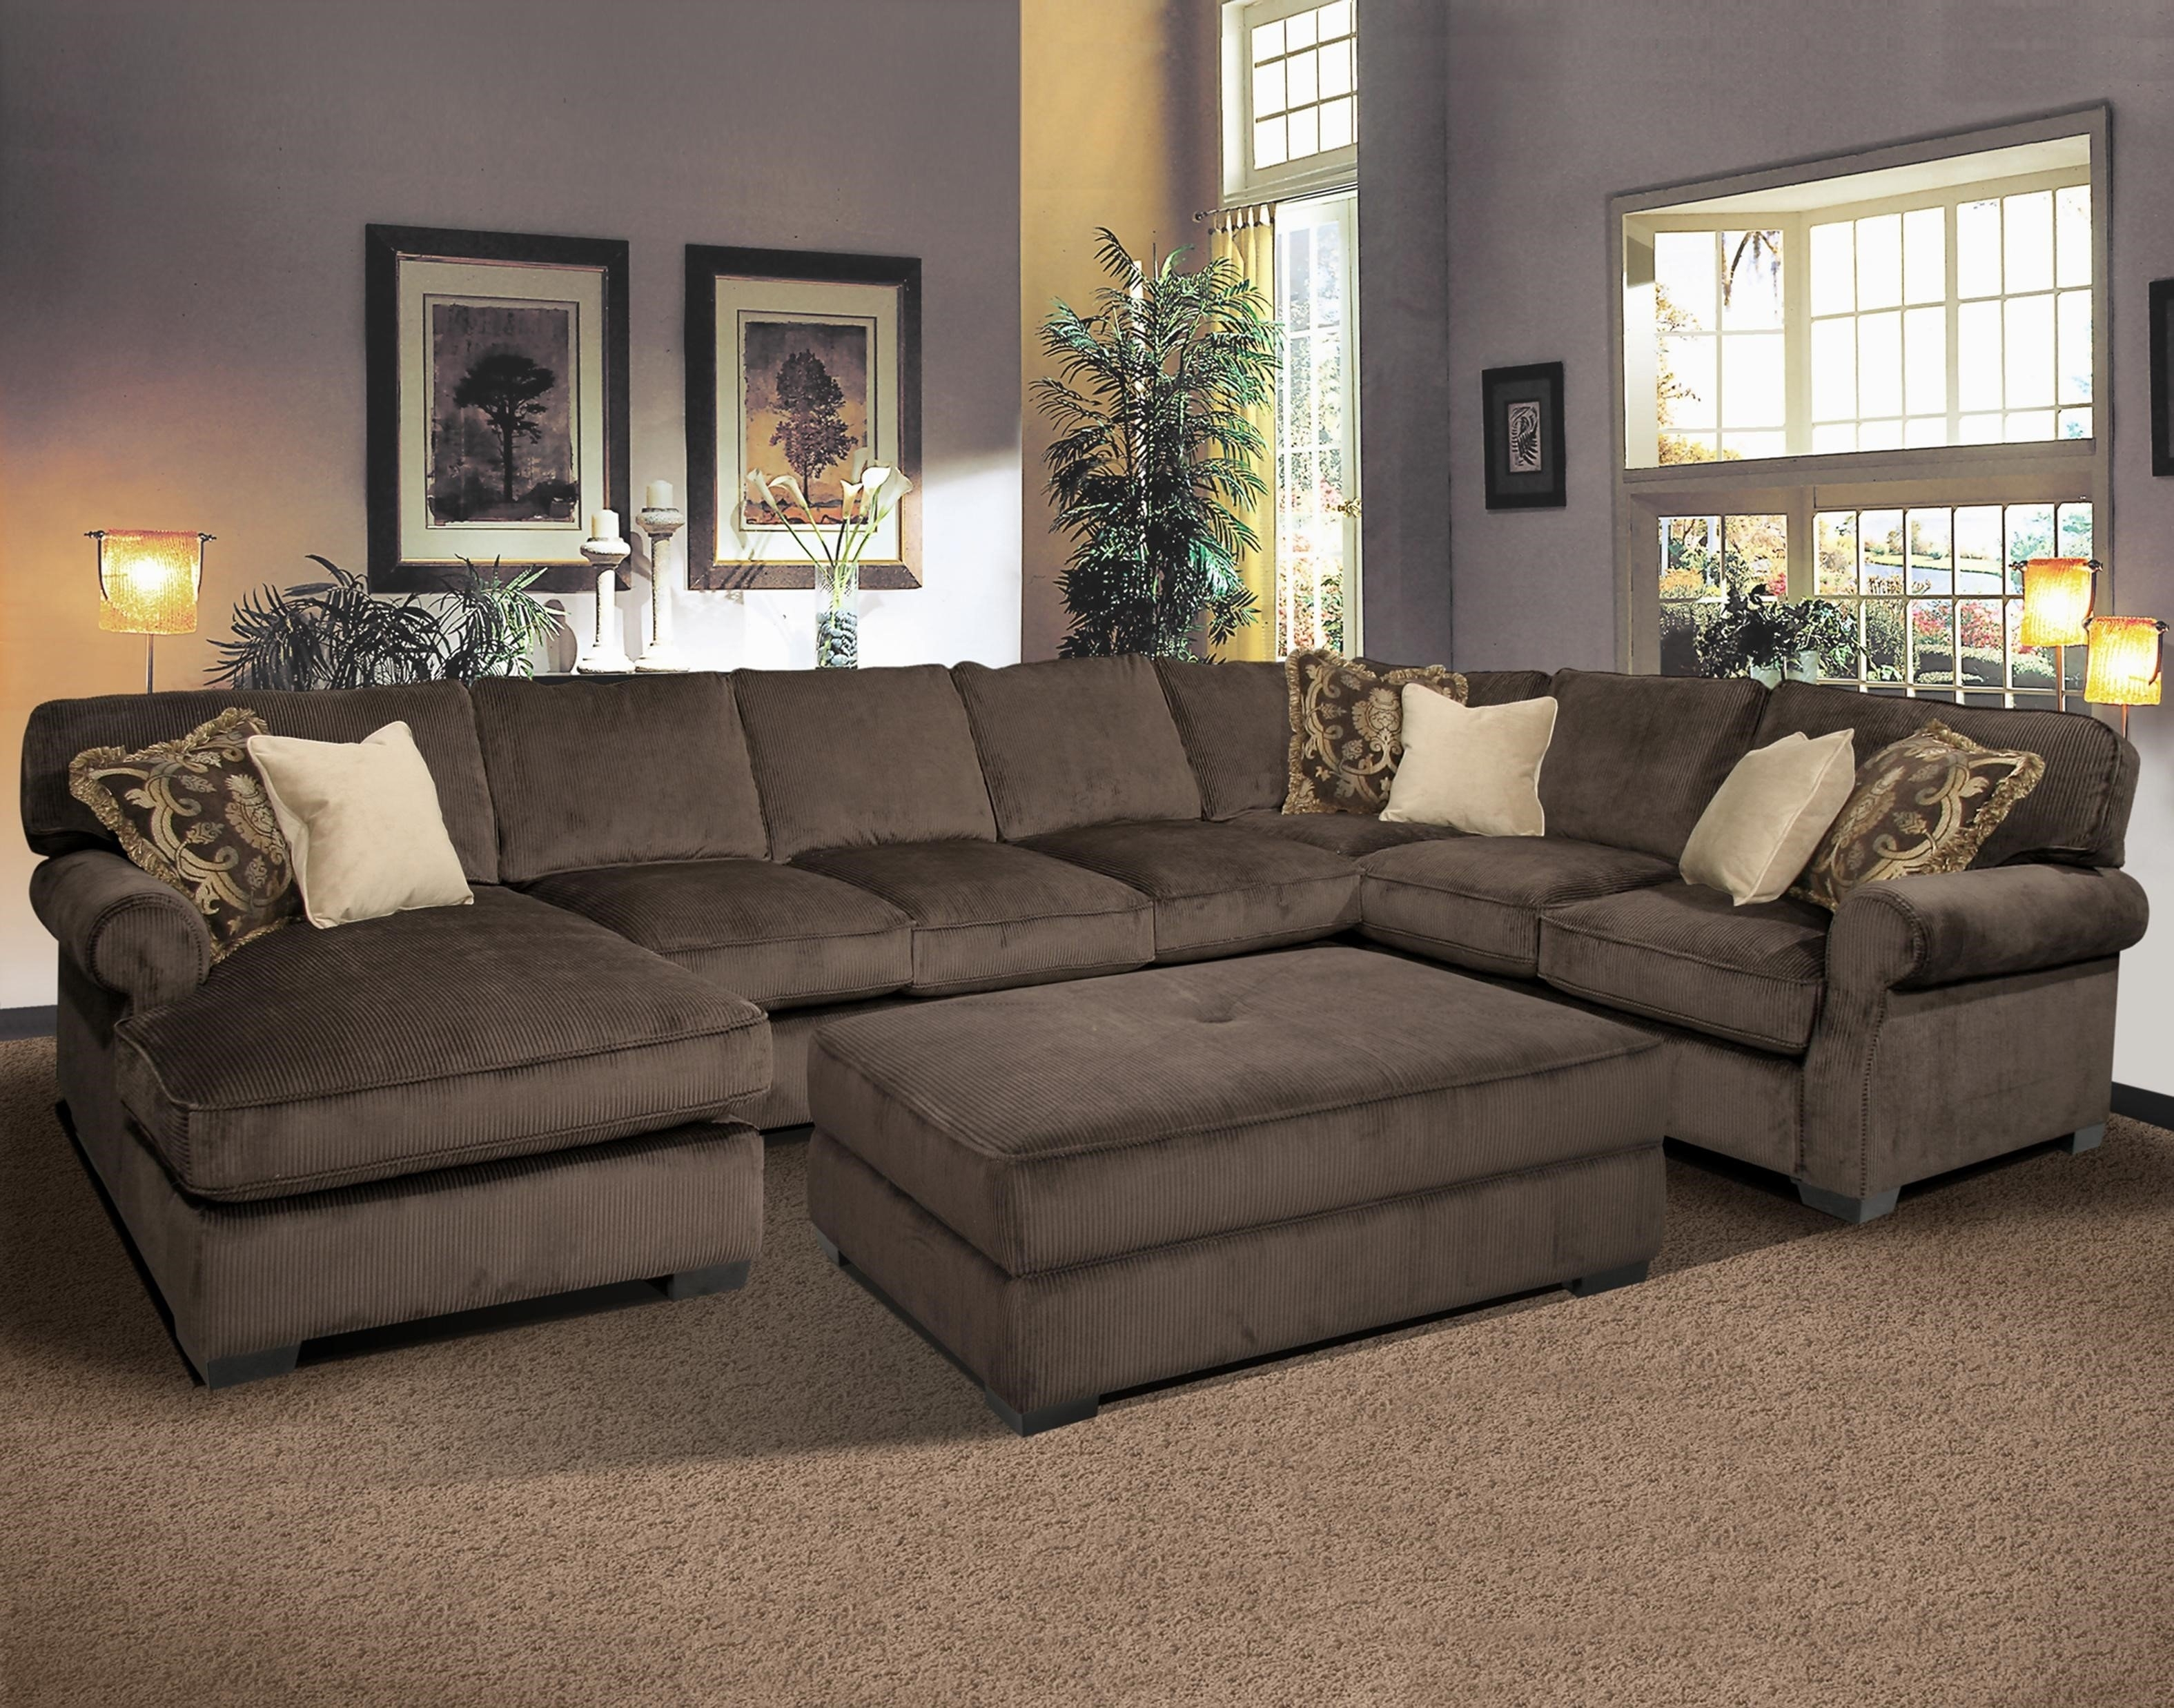 Magnificent Large Sectional Sofas — The Kienandsweet Furnitures Inside Long Chaise Sofas (View 7 of 10)